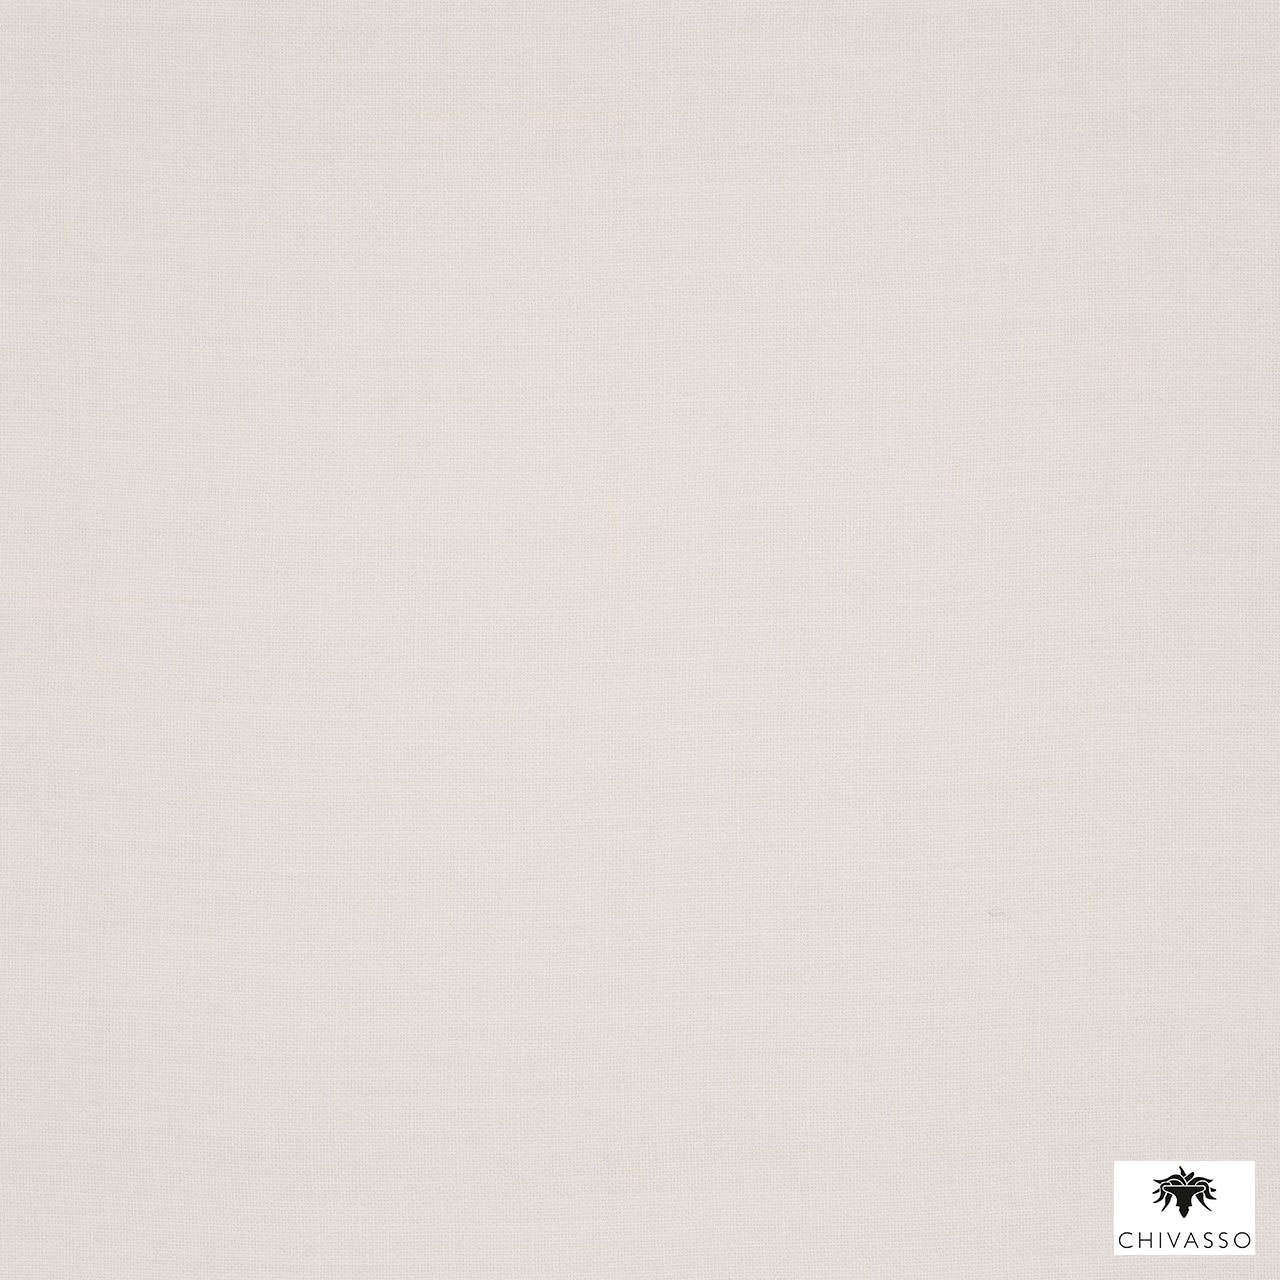 Chivasso - Vintage Soul - Ch2770-070  | Curtain Fabric - Beige, Plain, Natural Fibre, Domestic Use, Natural, Railroaded, Wide Width